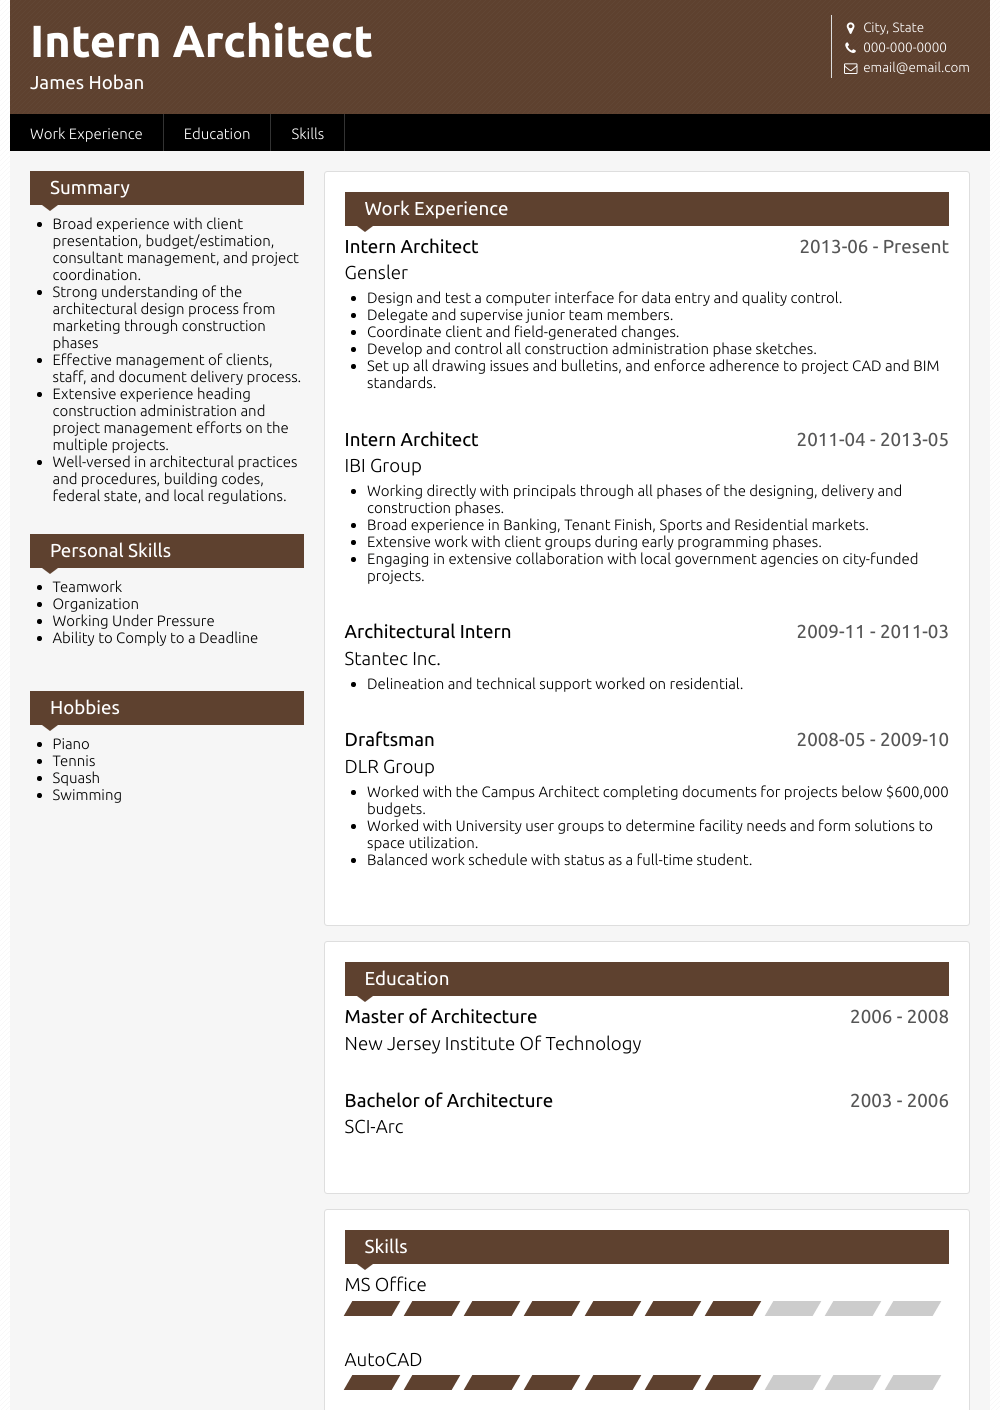 Architectural Intern - Resume Samples & Templates | VisualCV